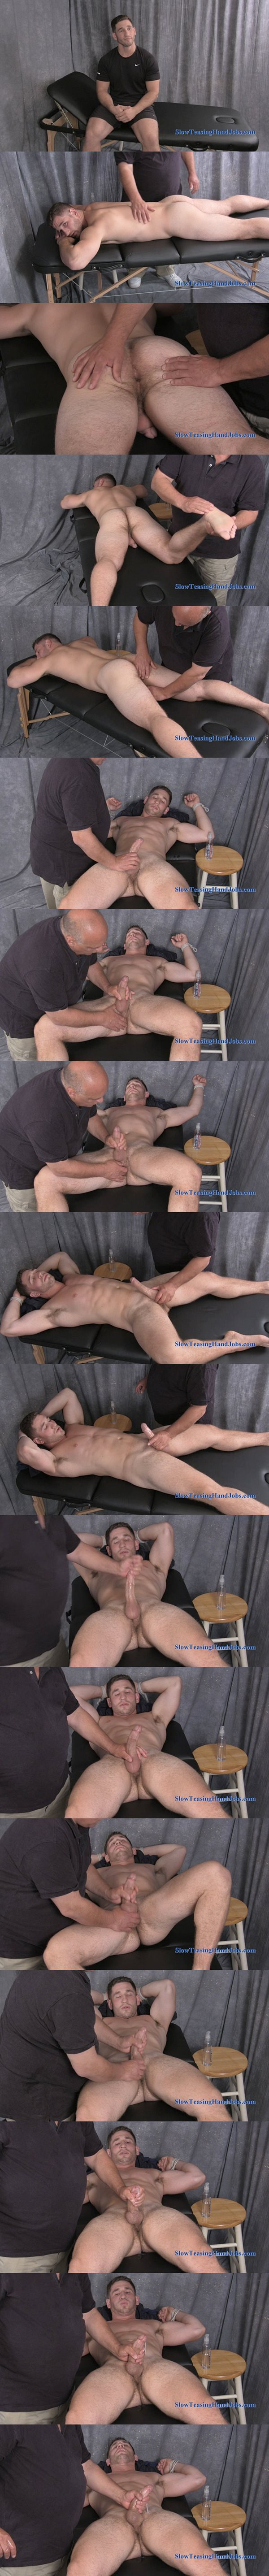 Handsome construction worker Anthony massaged and edged at Slowteasinghandjobs 02